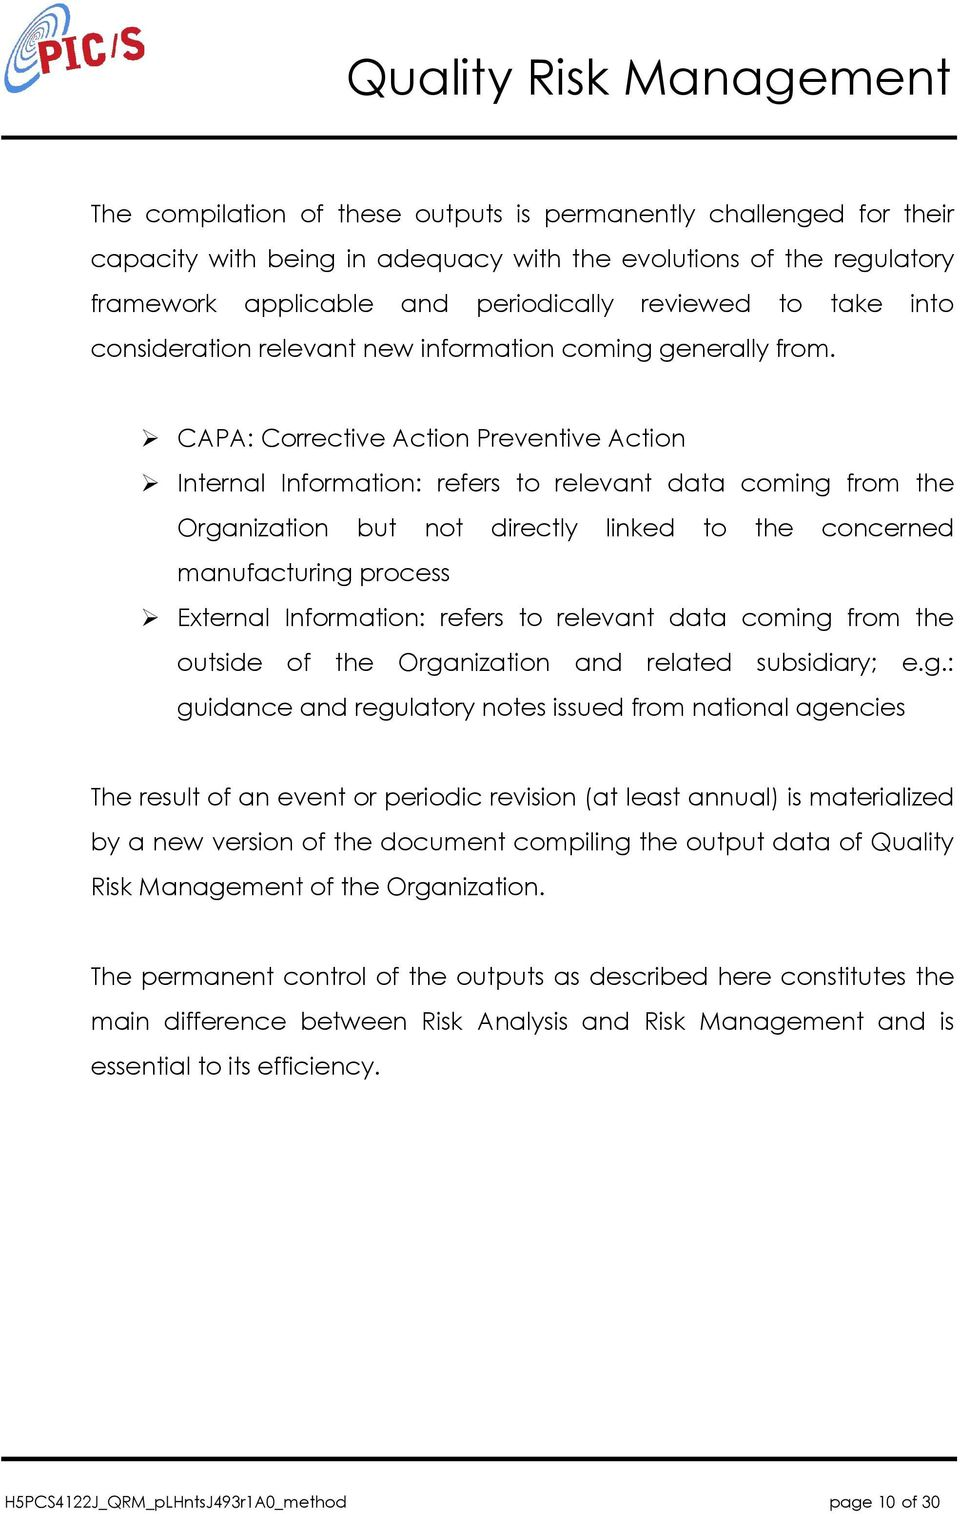 CAPA: Corrective Action Preventive Action Internal Information: refers to relevant data coming from the Organization but not directly linked to the concerned manufacturing process External